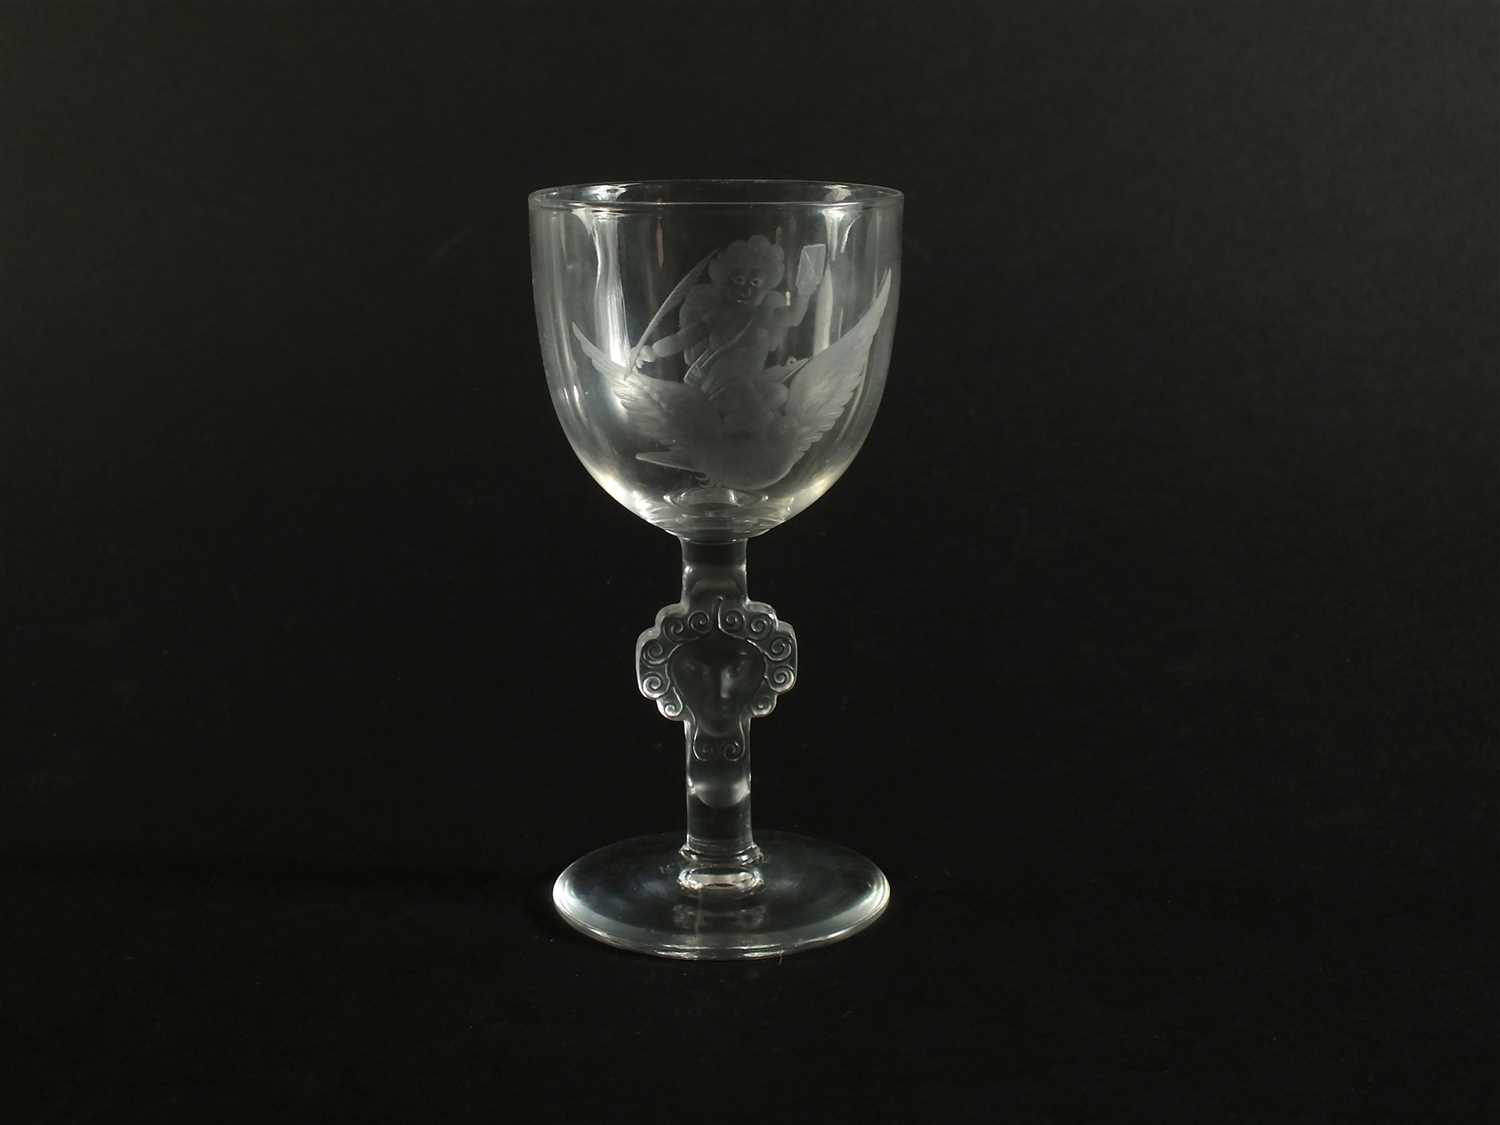 Lot 131 - An Art Deco René Lalique wine glass